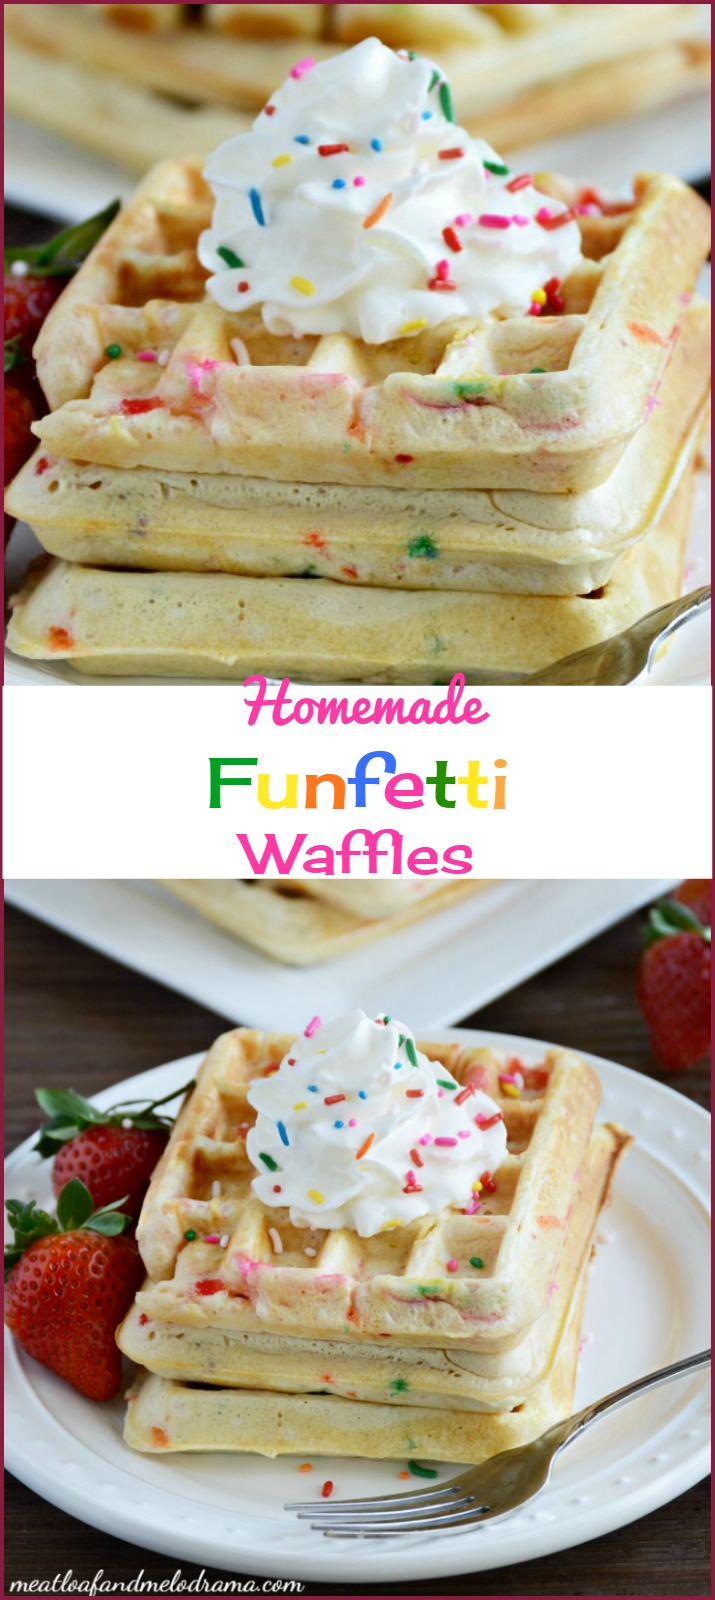 Homemade Funfetti Waffles Meatloaf And Melodrama